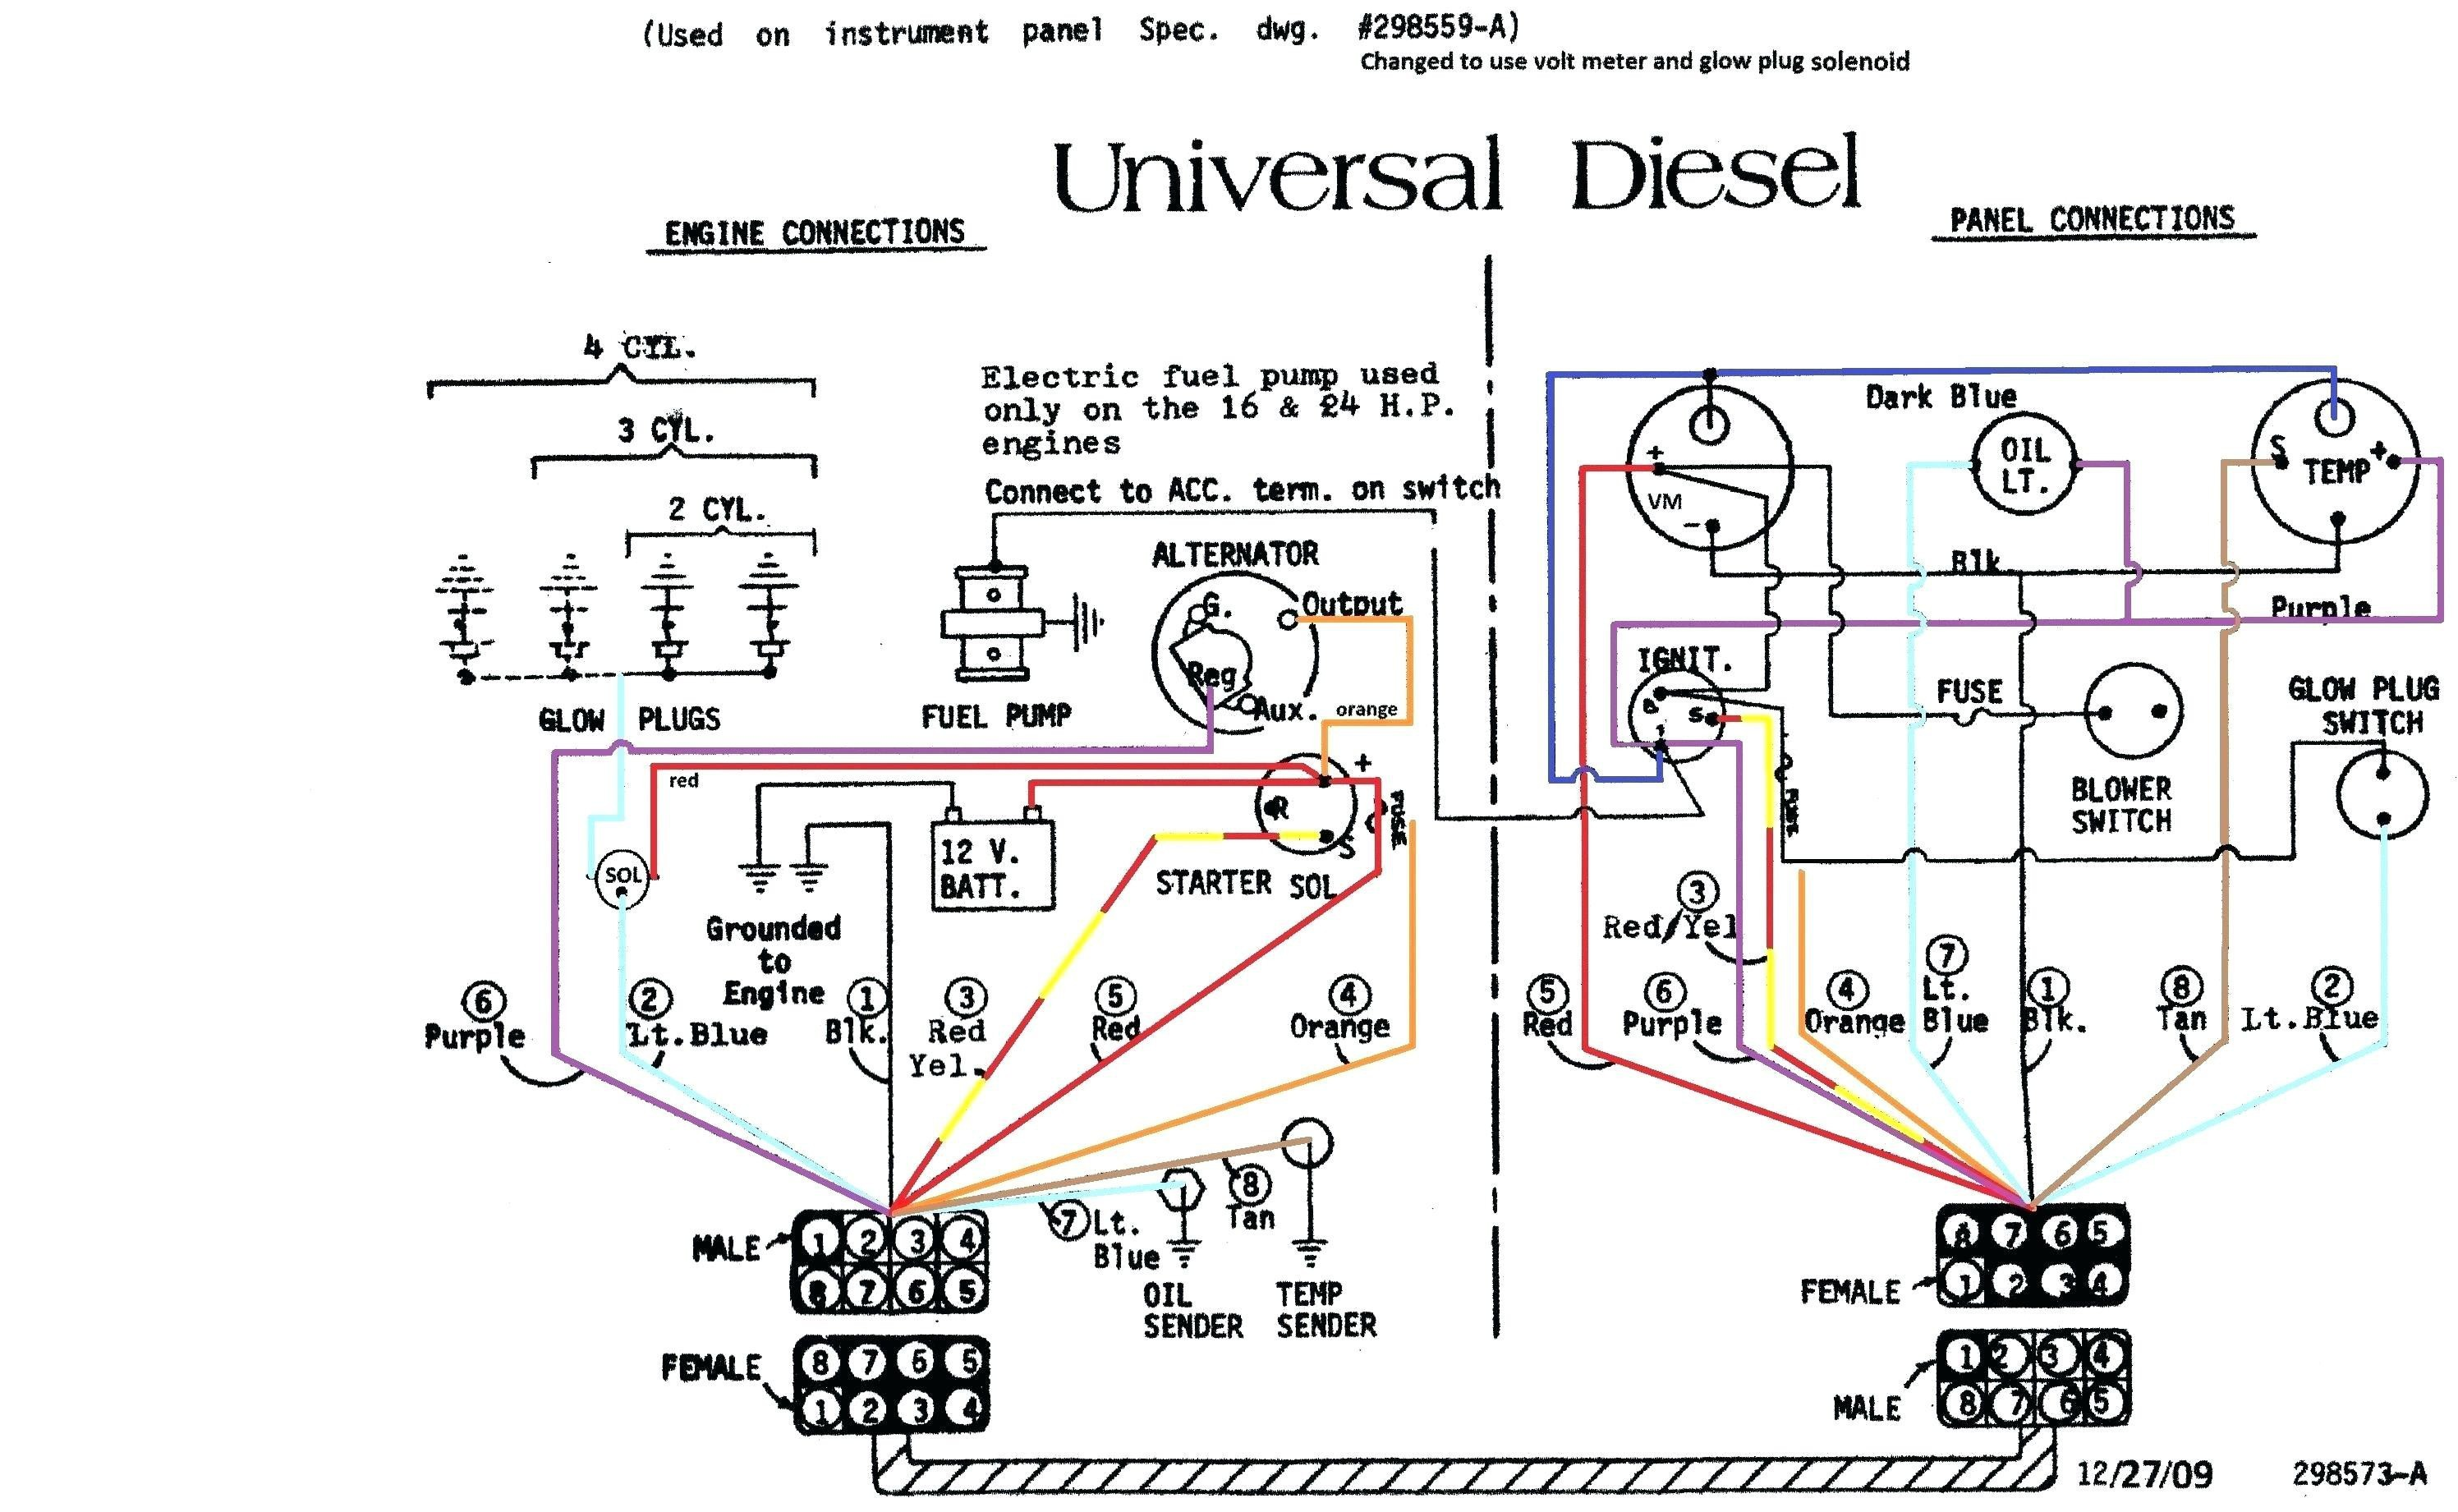 7 3 diesel engine diagram wiring diagram yamaha 125zr save 5 7 7 3 diesel engine diagram wiring diagram for diesel alternator fresh diesel engine alternator of 7 asfbconference2016 Choice Image